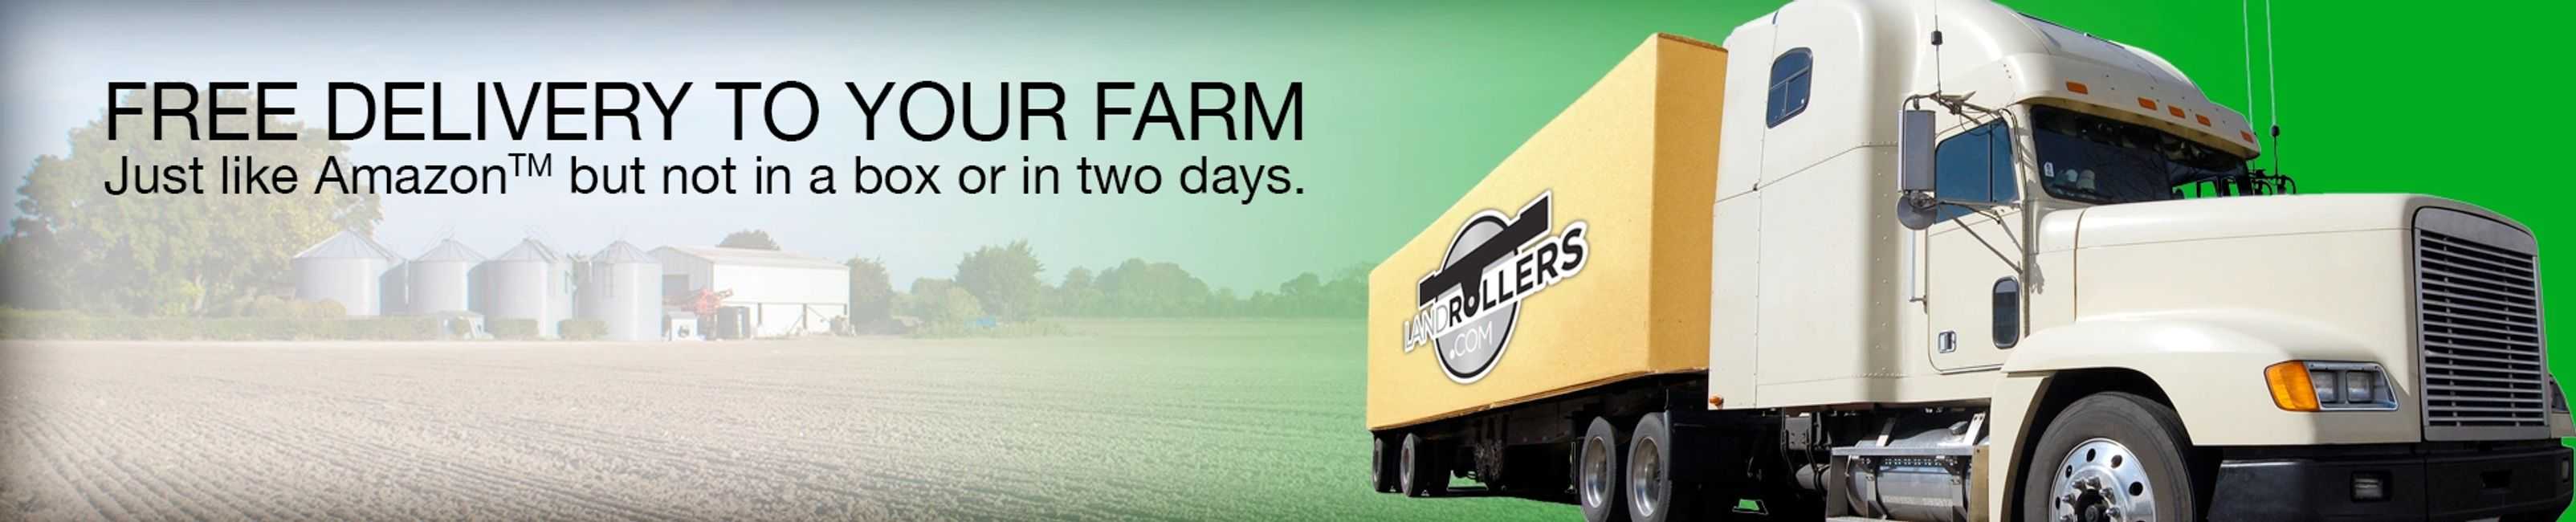 Free delivery to your farm, freight, Delivery, land roller, land rollers, landrollers.com, colors